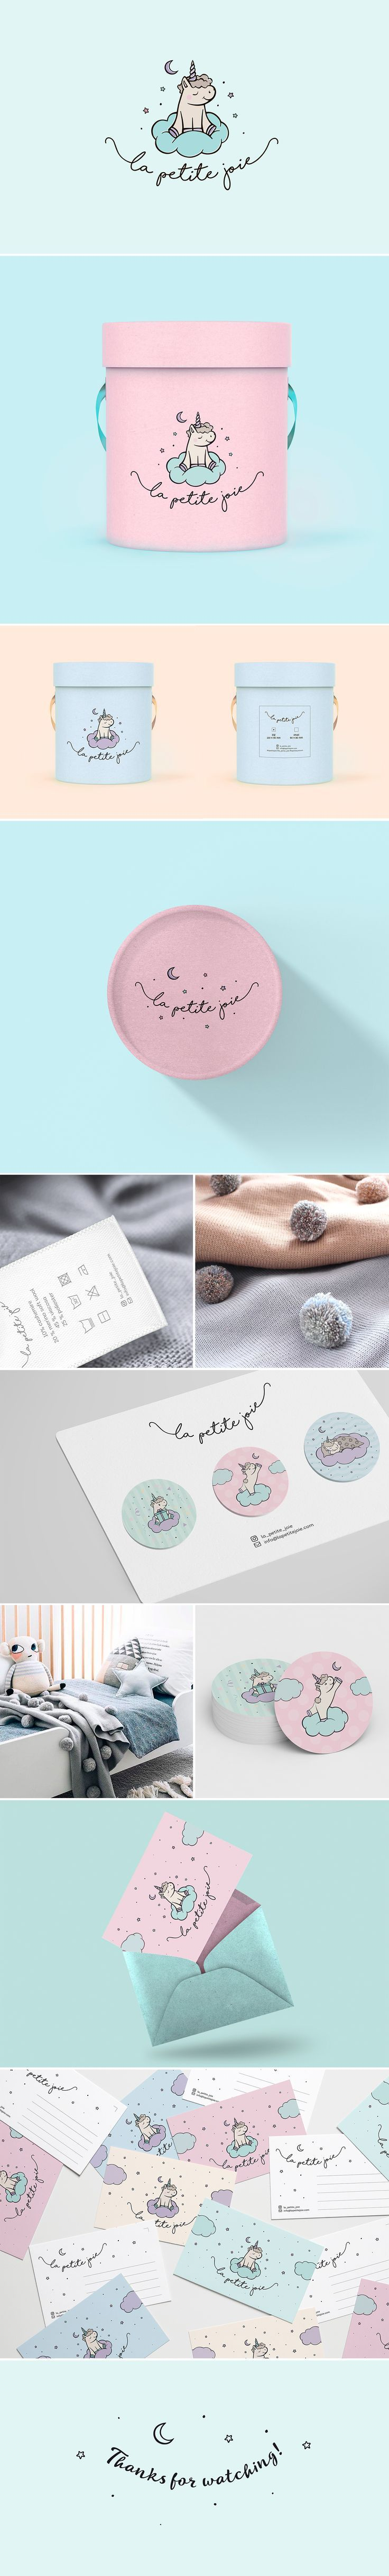 La Petite Joie on Behance                                                                                                                                                                                 More